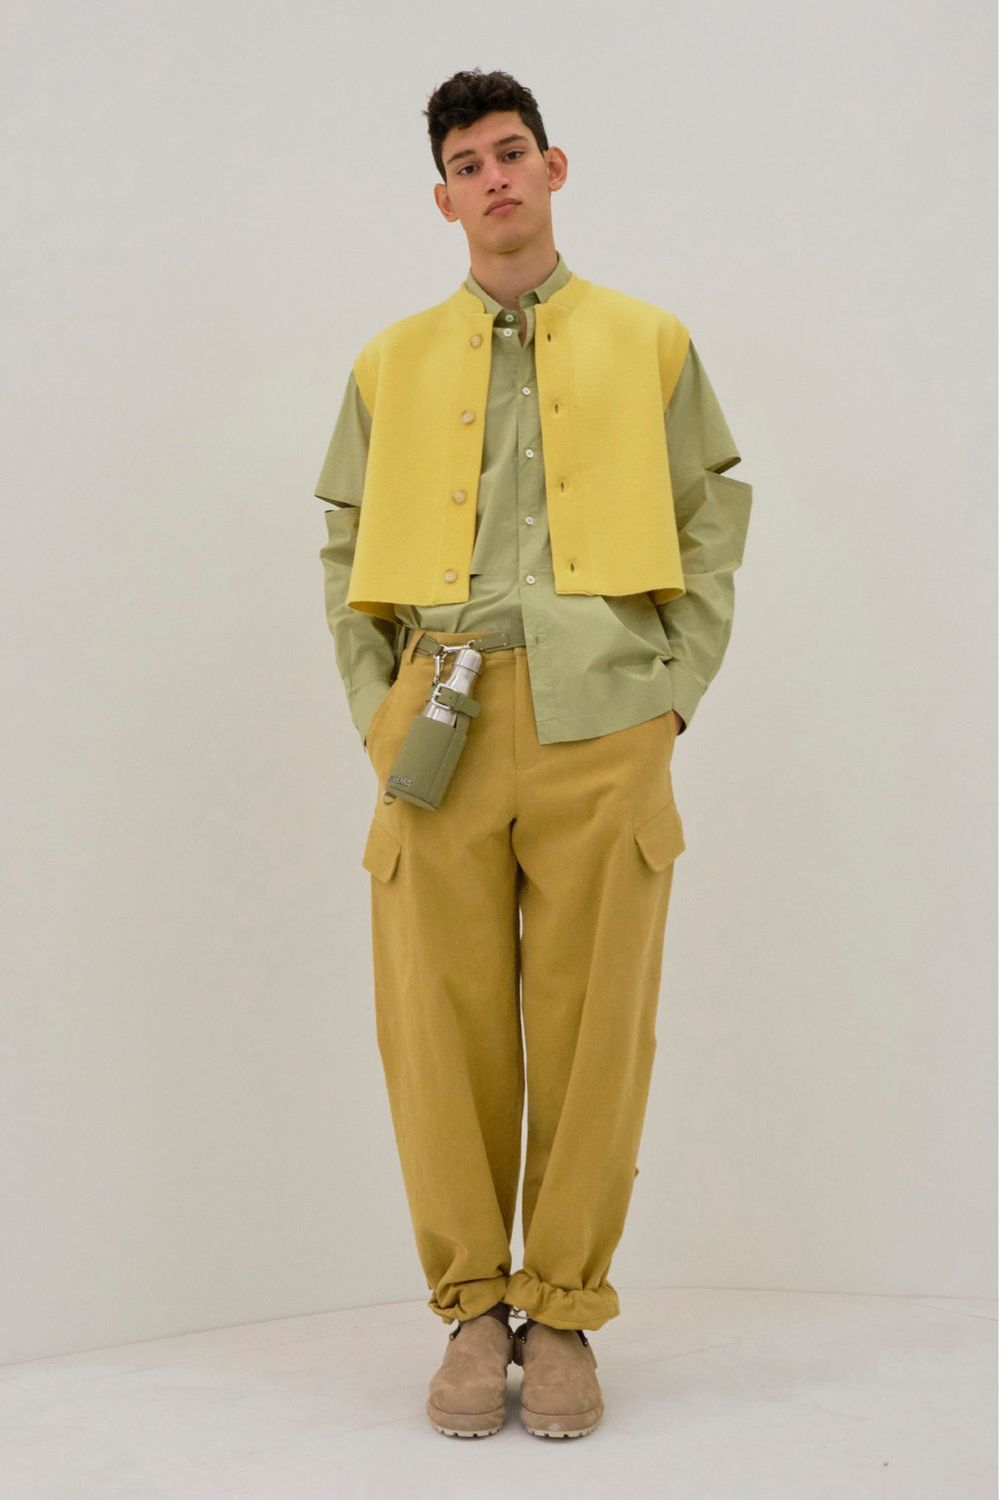 Jacquemus' FW20 Men's Lookbook Is an Ode to Color